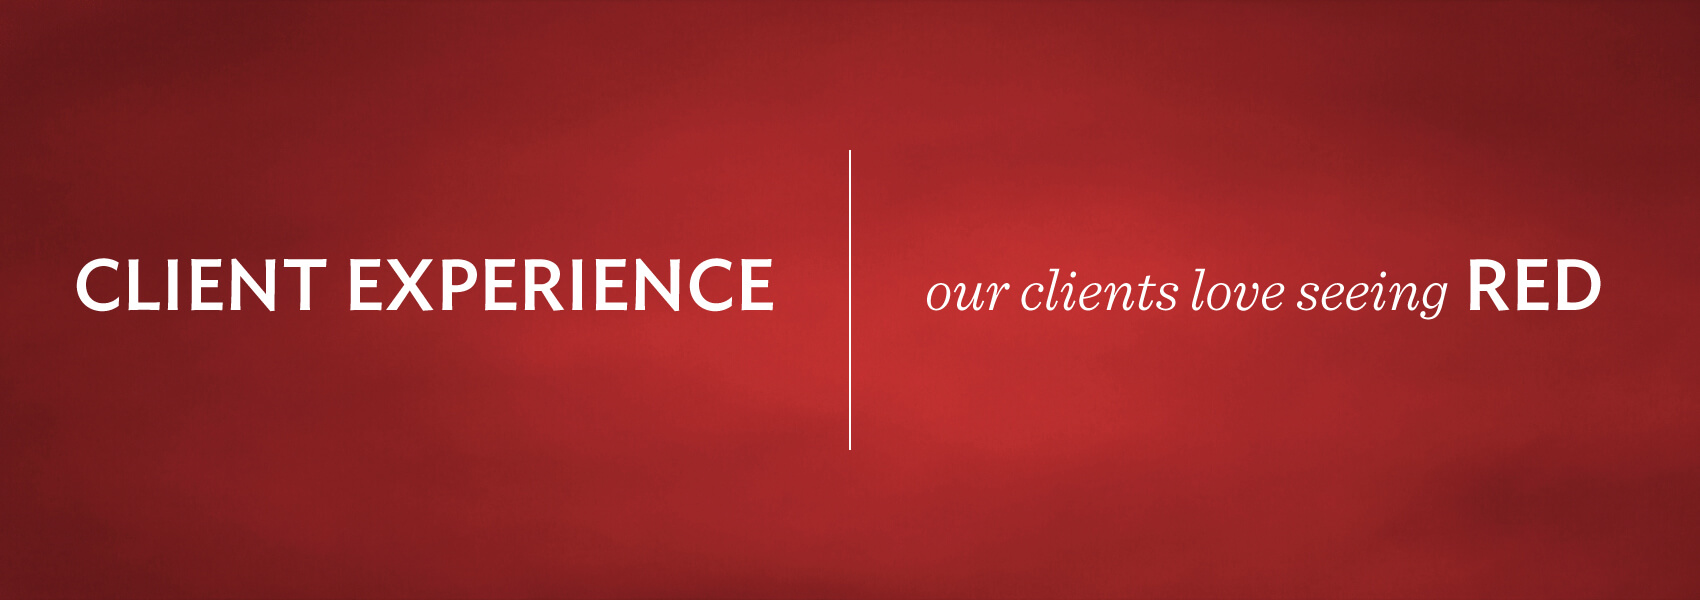 Merlot Marketing Client Experience